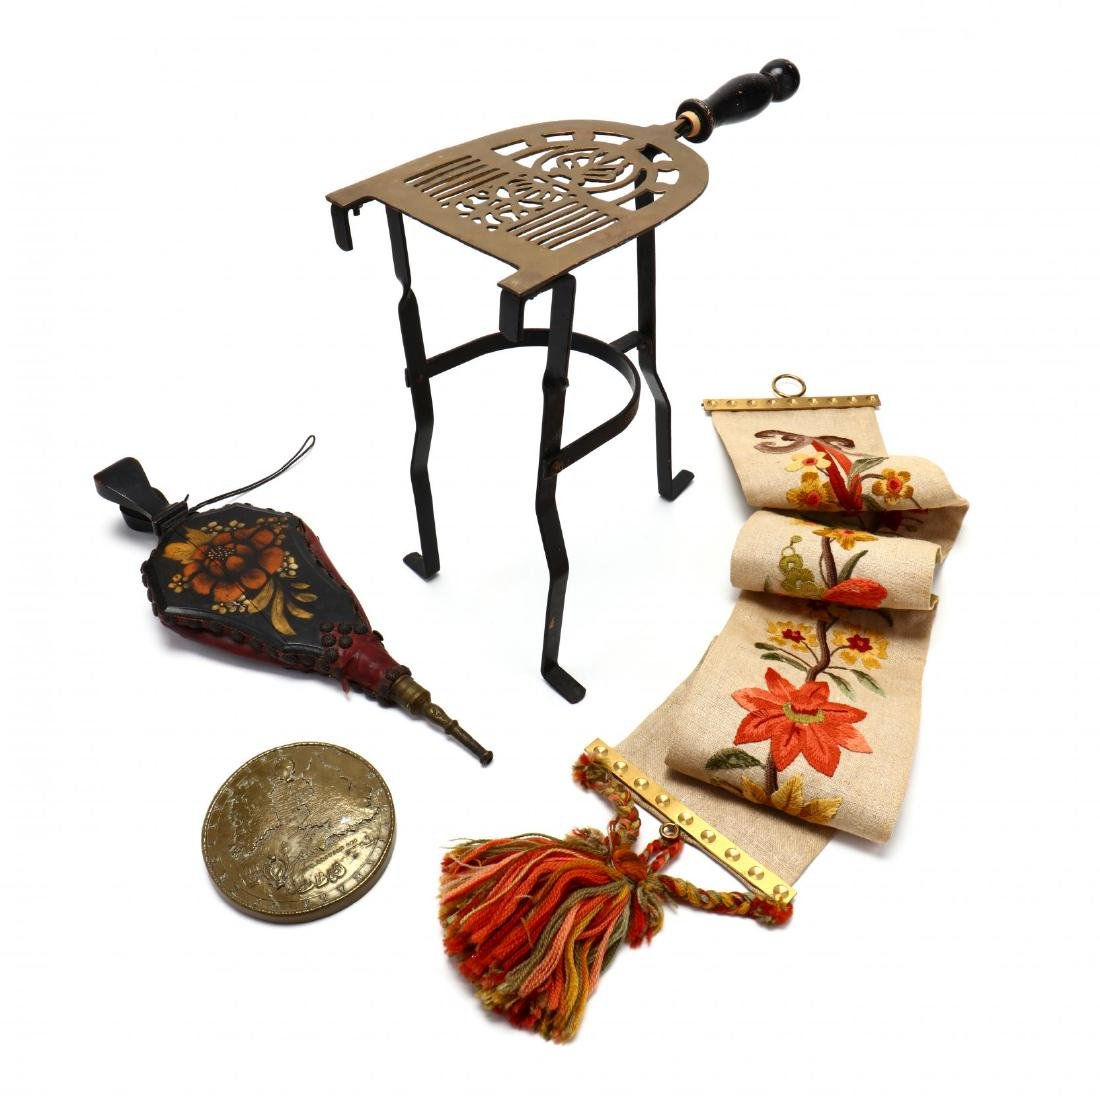 Decorative Accessories Grouping